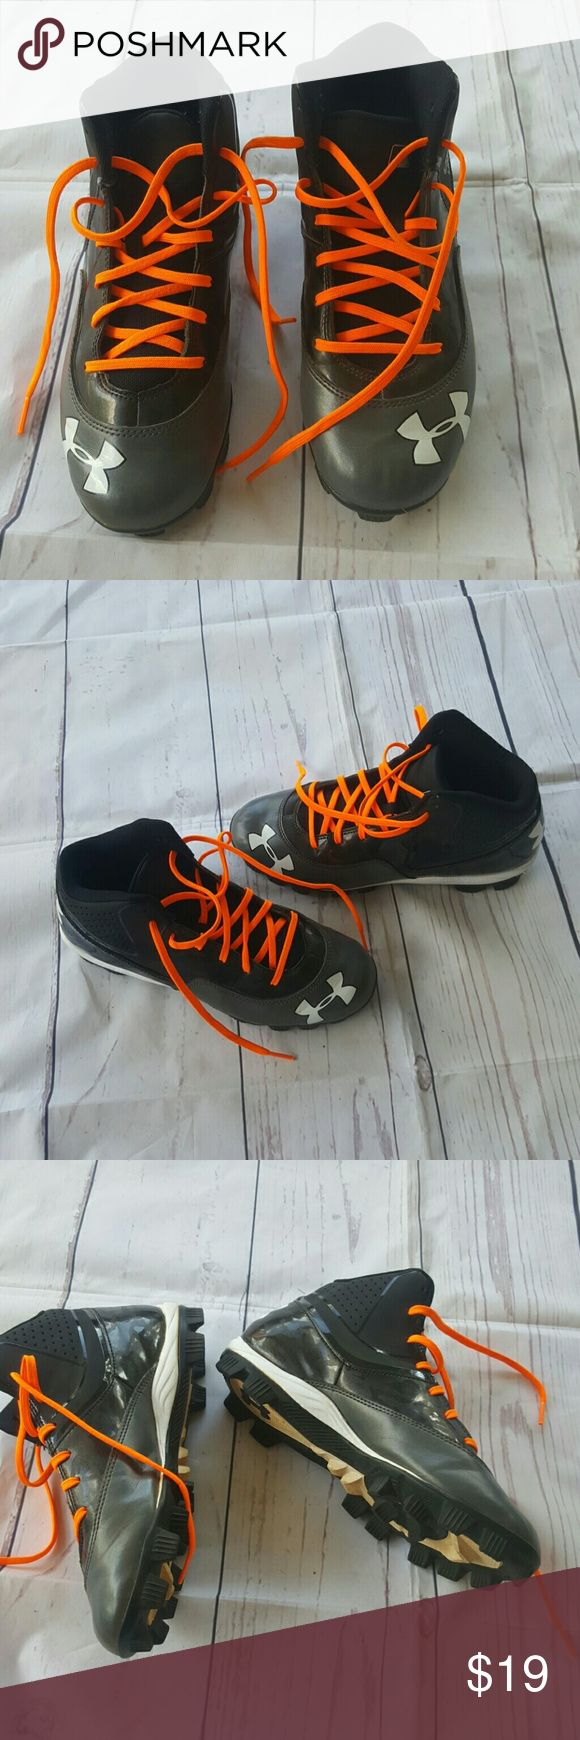 6y under armour high top cleats Excellent used Under Armour high top black cleats with bright orange shoelaces almost in brand new condition. Under Armour Shoes Sneakers